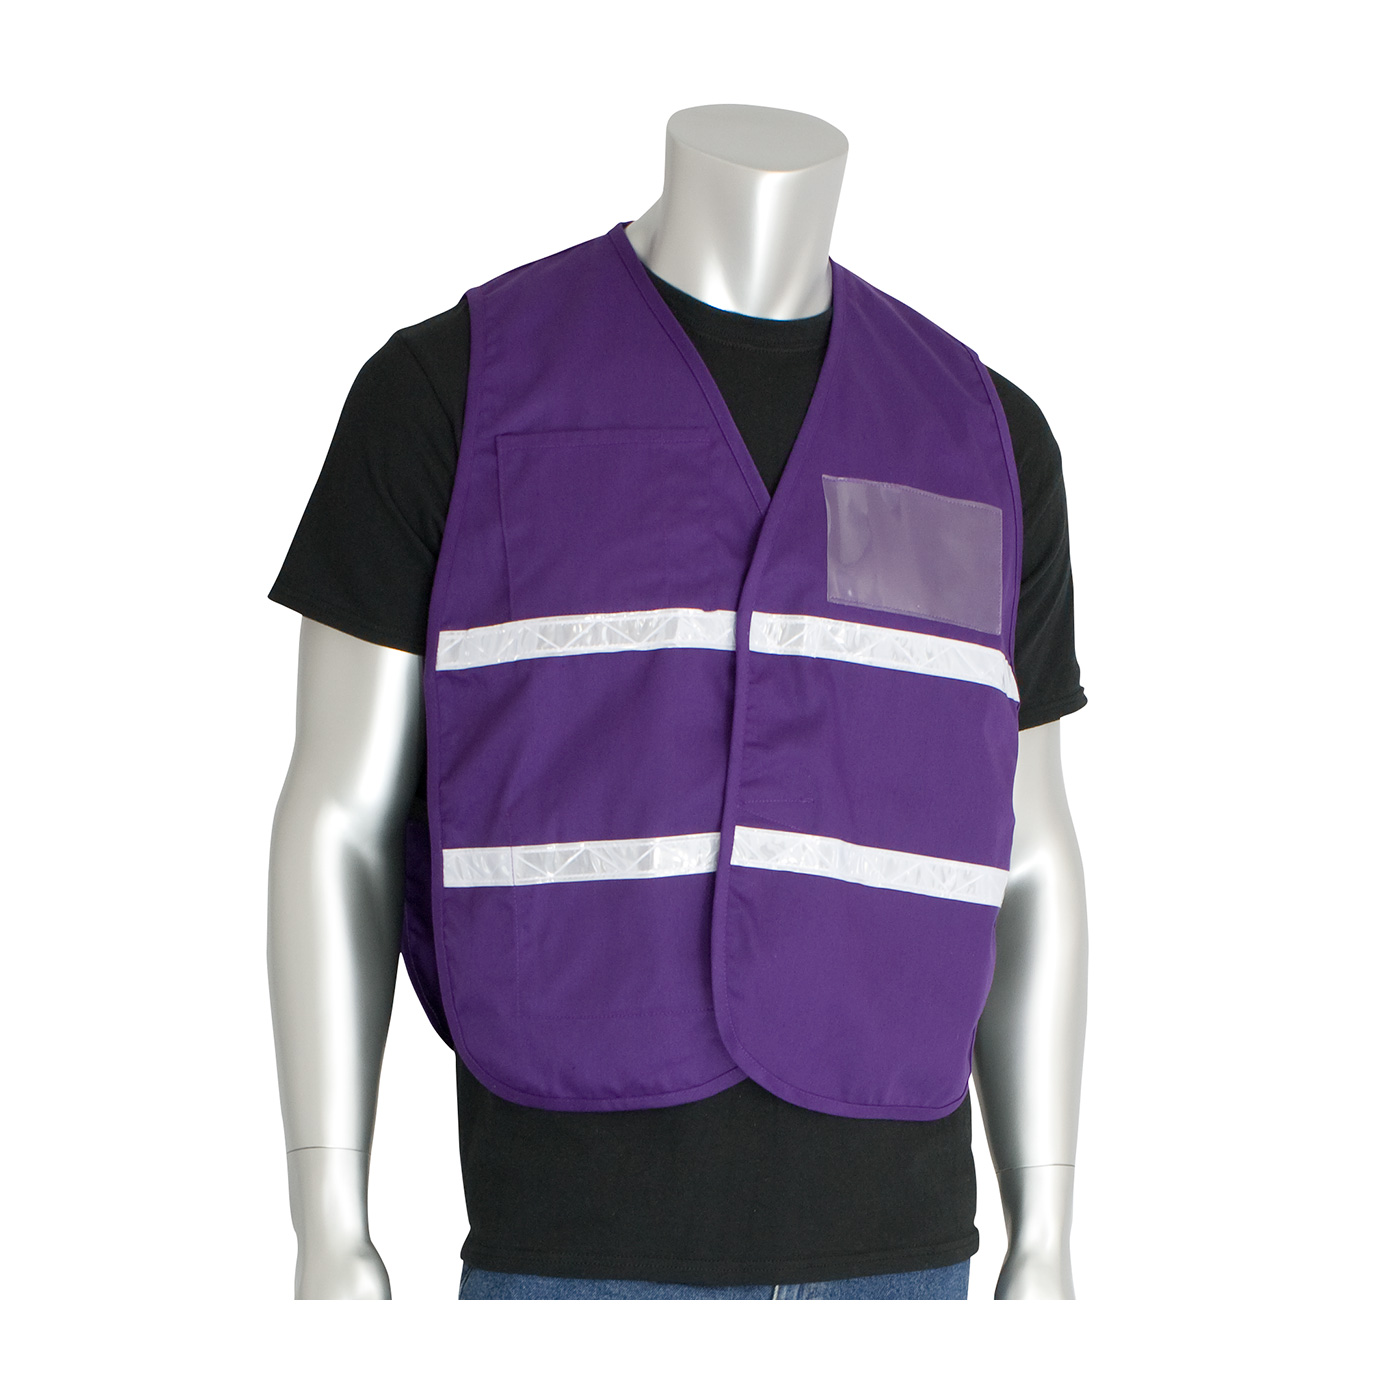 Non Ansi Safety Vest Protective Industrial Products